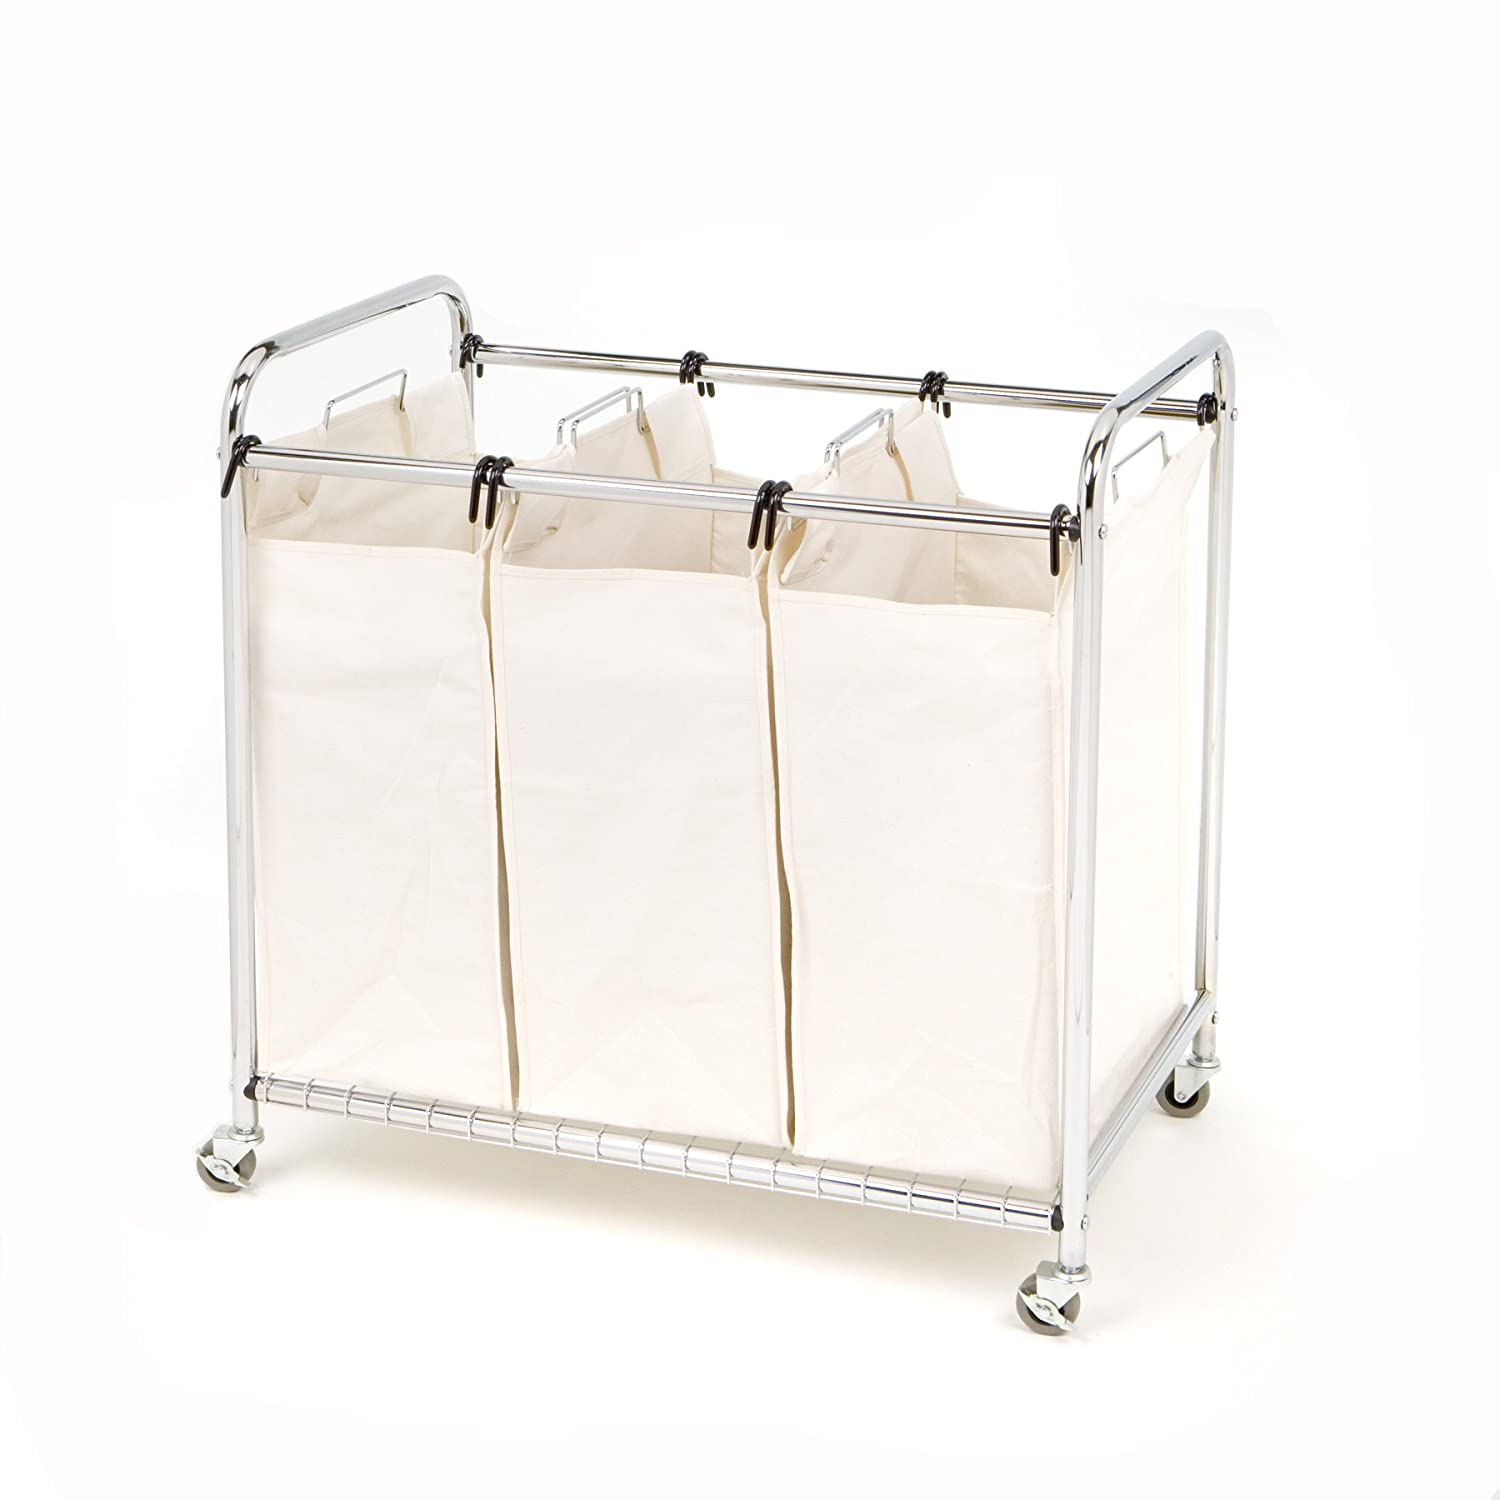 4 Compartment Laundry Basket Top 10 Hampers Laundry Sorters Grace Brooke Llc